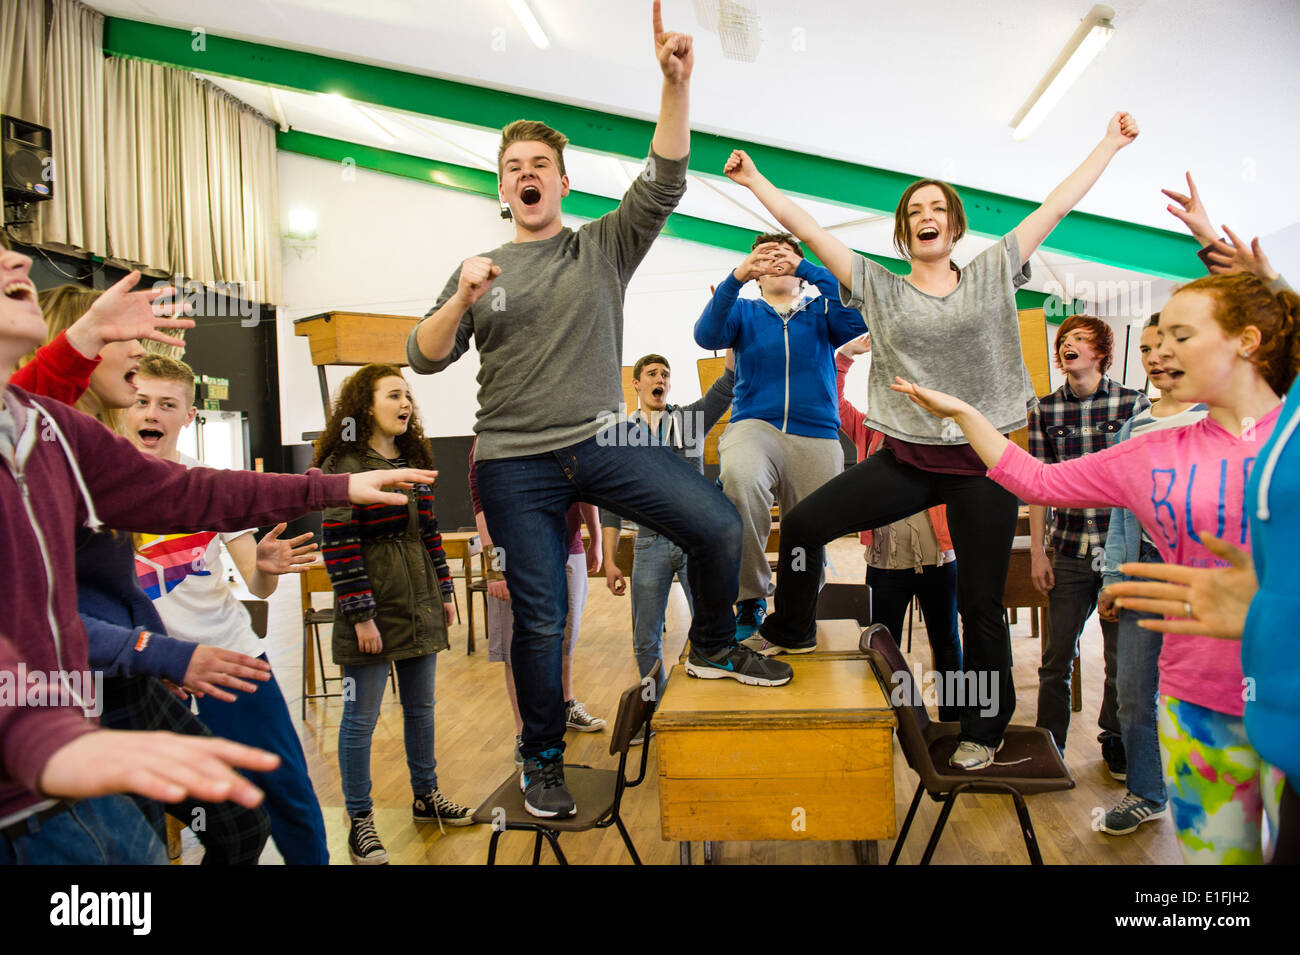 A group of teenagers in youth theatre rehearsing singing and acting for a musical theater performance, UK - Stock Image